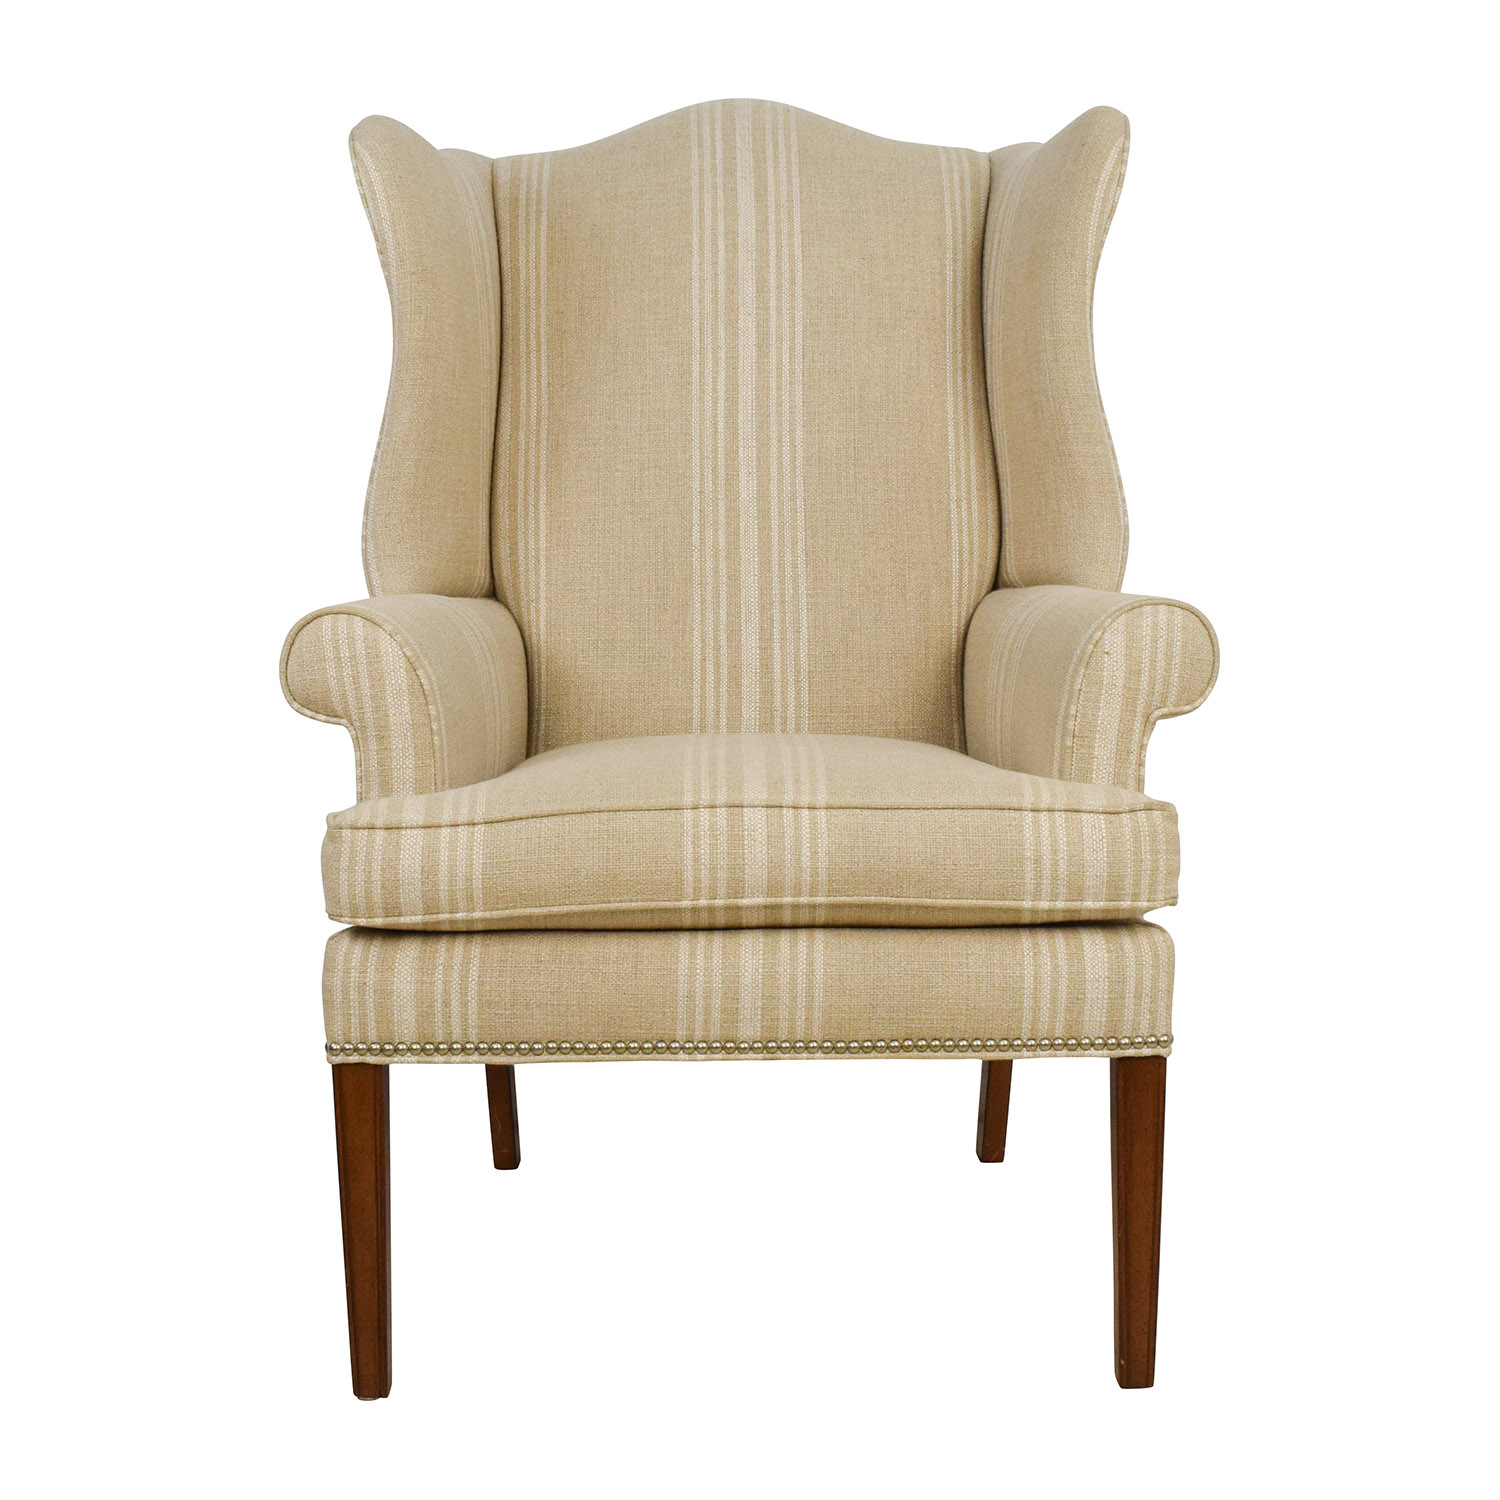 Ethan Allen Club Chairs 88 Off Ethan Allen Ethan Allen Skylar Stripped Wing Chair Chairs